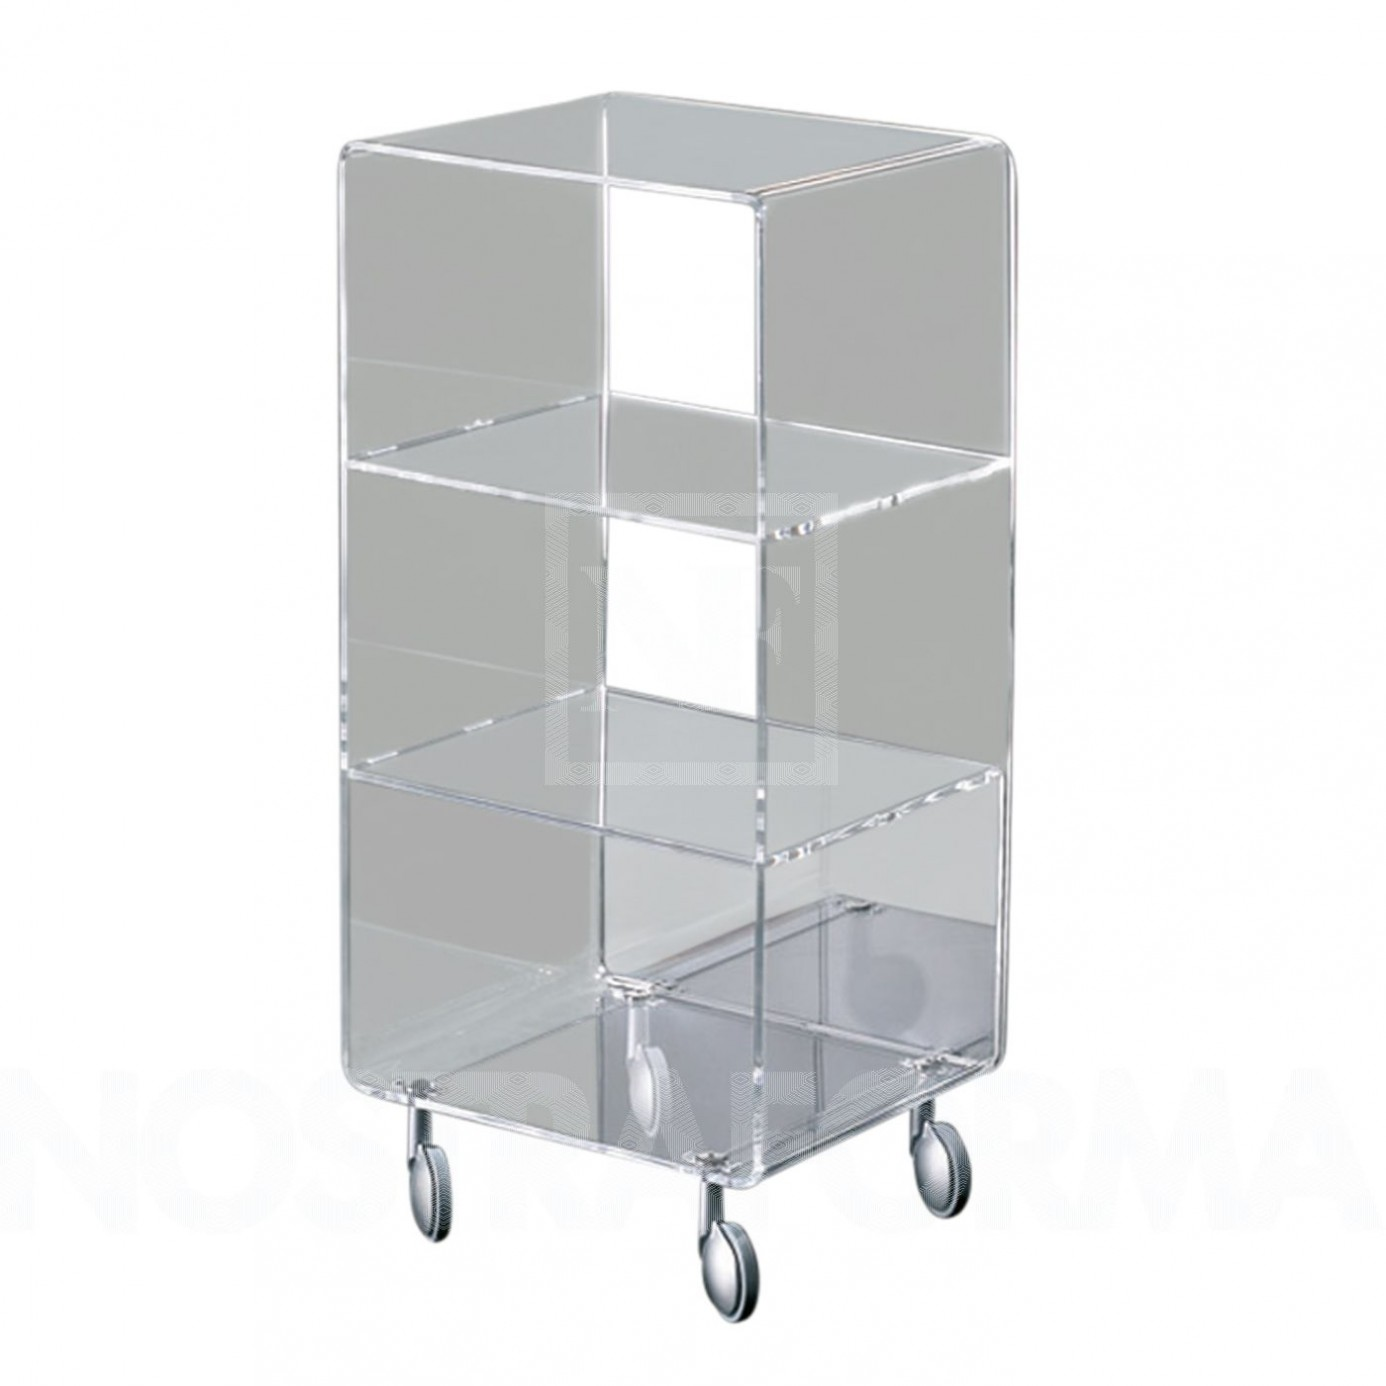 Ikea Stoff Kleiderschränke Kallax Shelf Unit On Casters With 4 Doors White 35×57 7 8